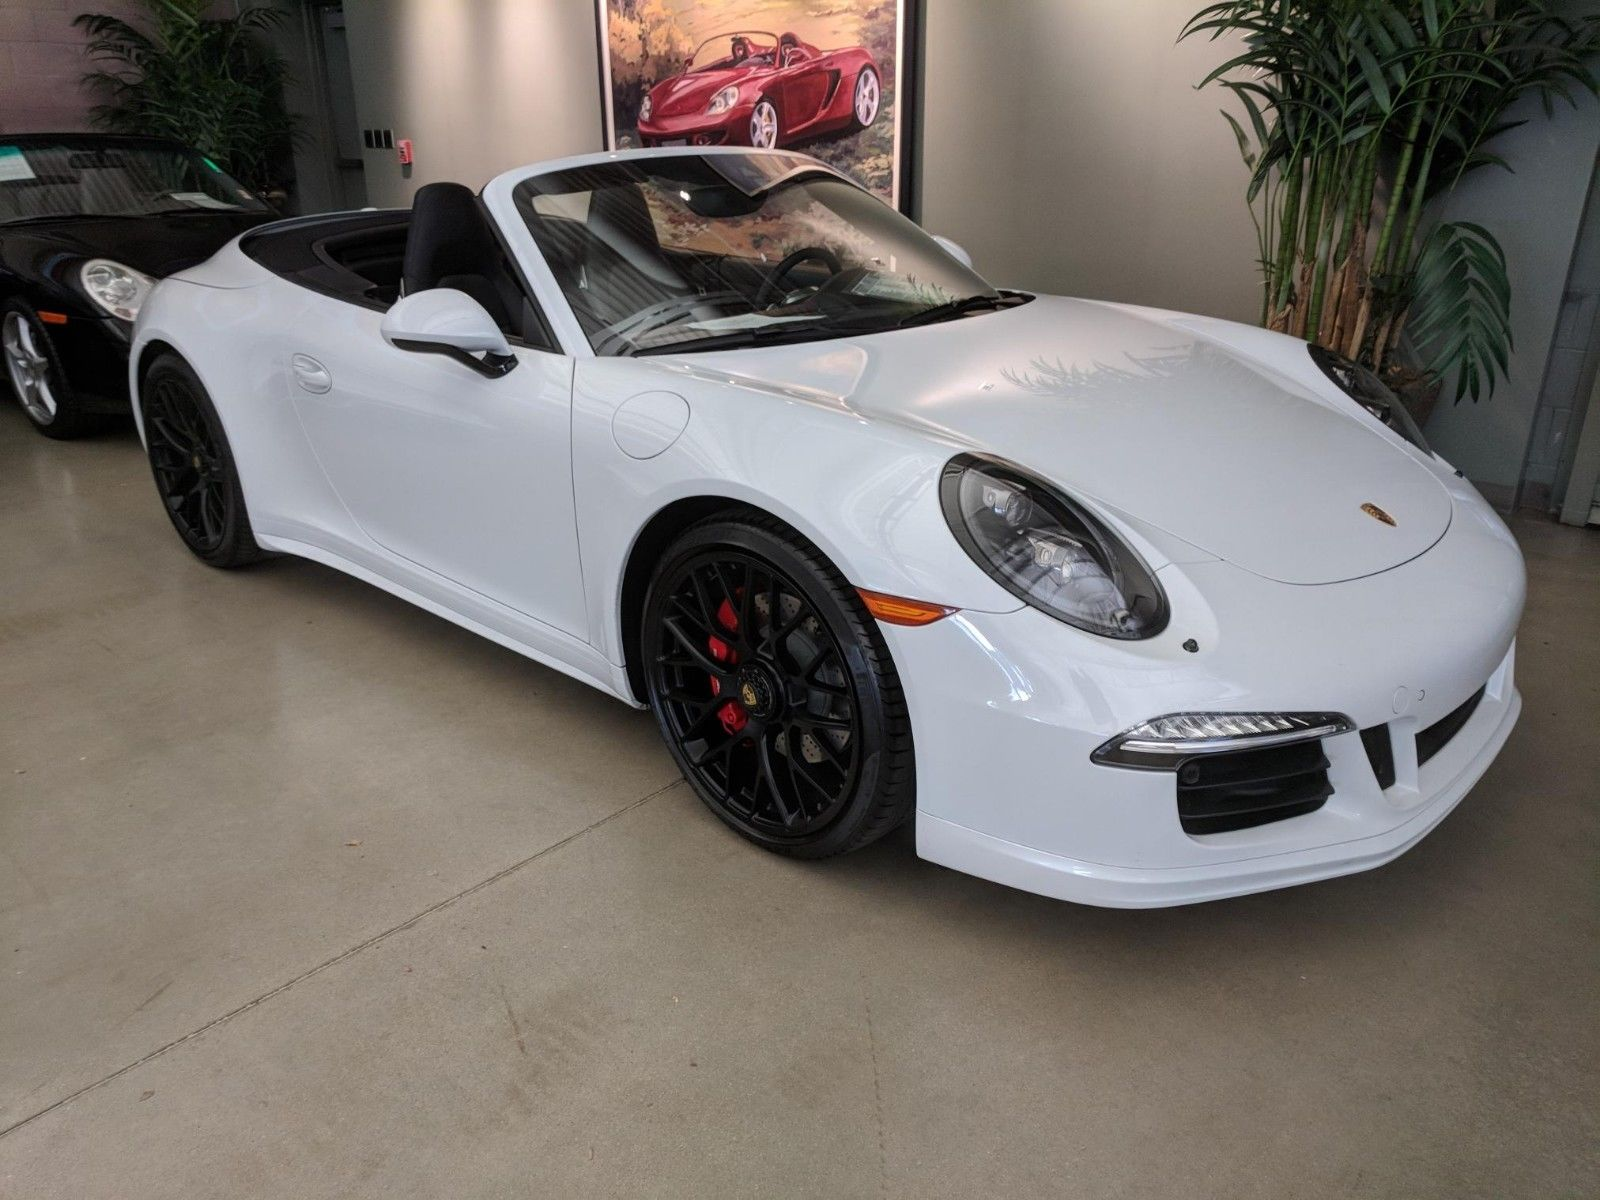 2016 Porsche 911 Carrera 4 Gts Cabriolet Port Seats Led Headlights Low Low Miles Porsche Factory Certified Flawless 2017 2018 24carshop Com